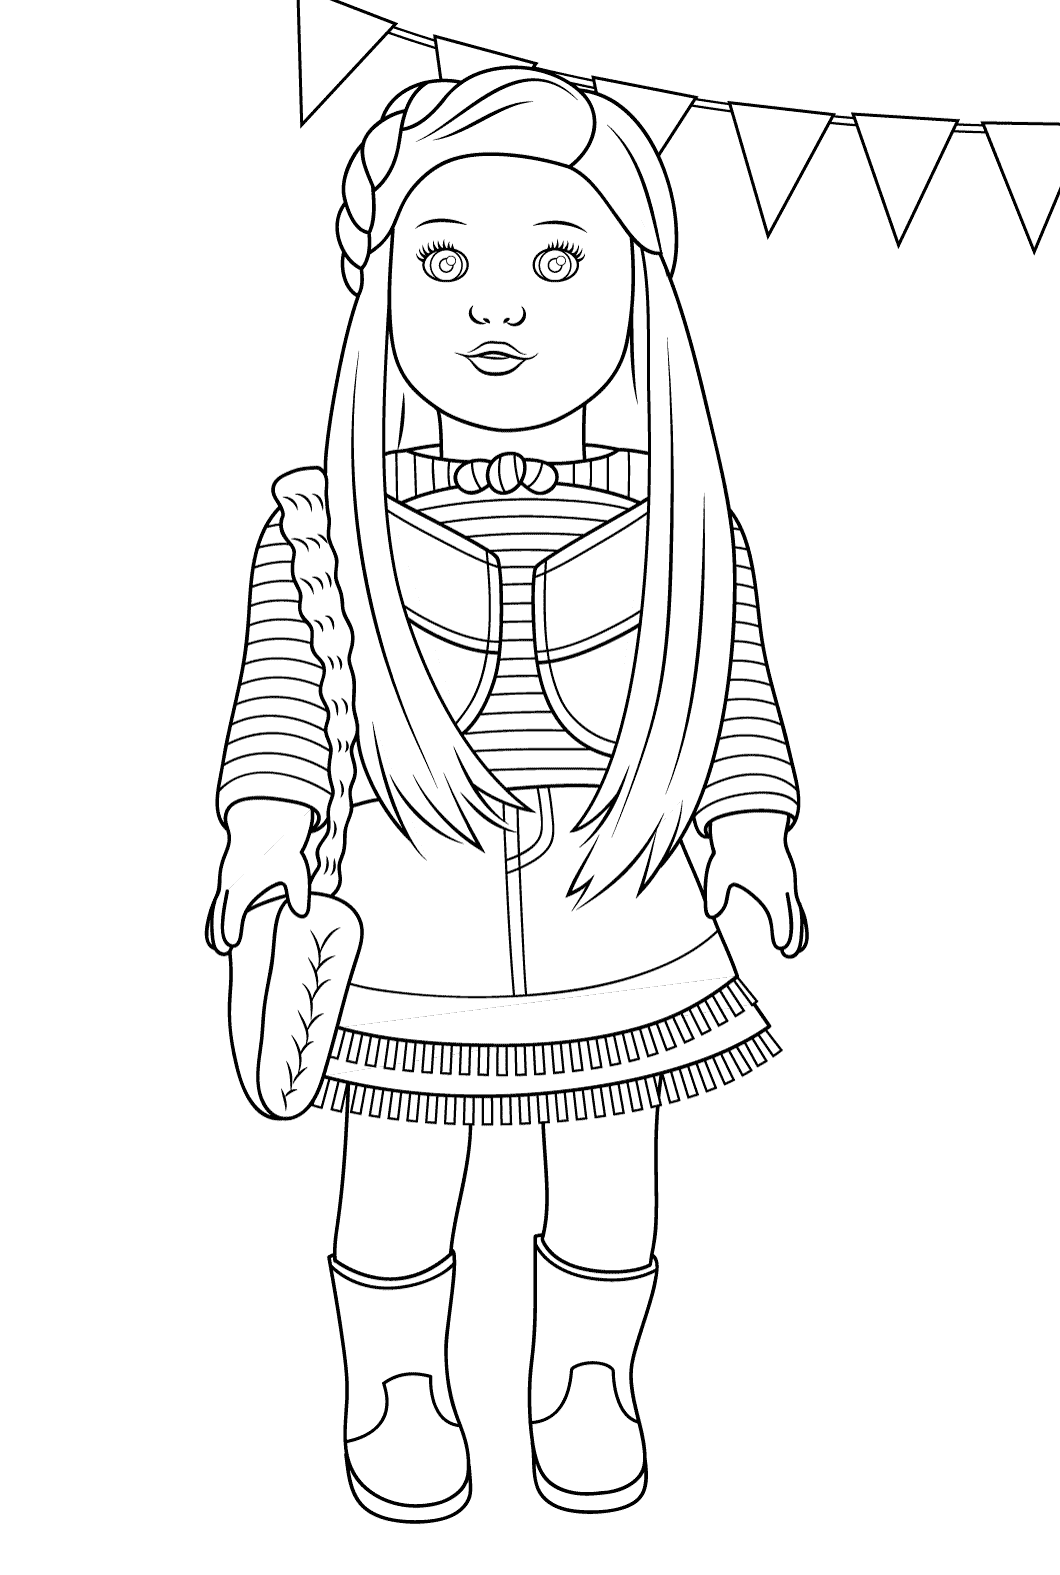 girl colering pages little boy and girl coloring pages coloring home girl pages colering